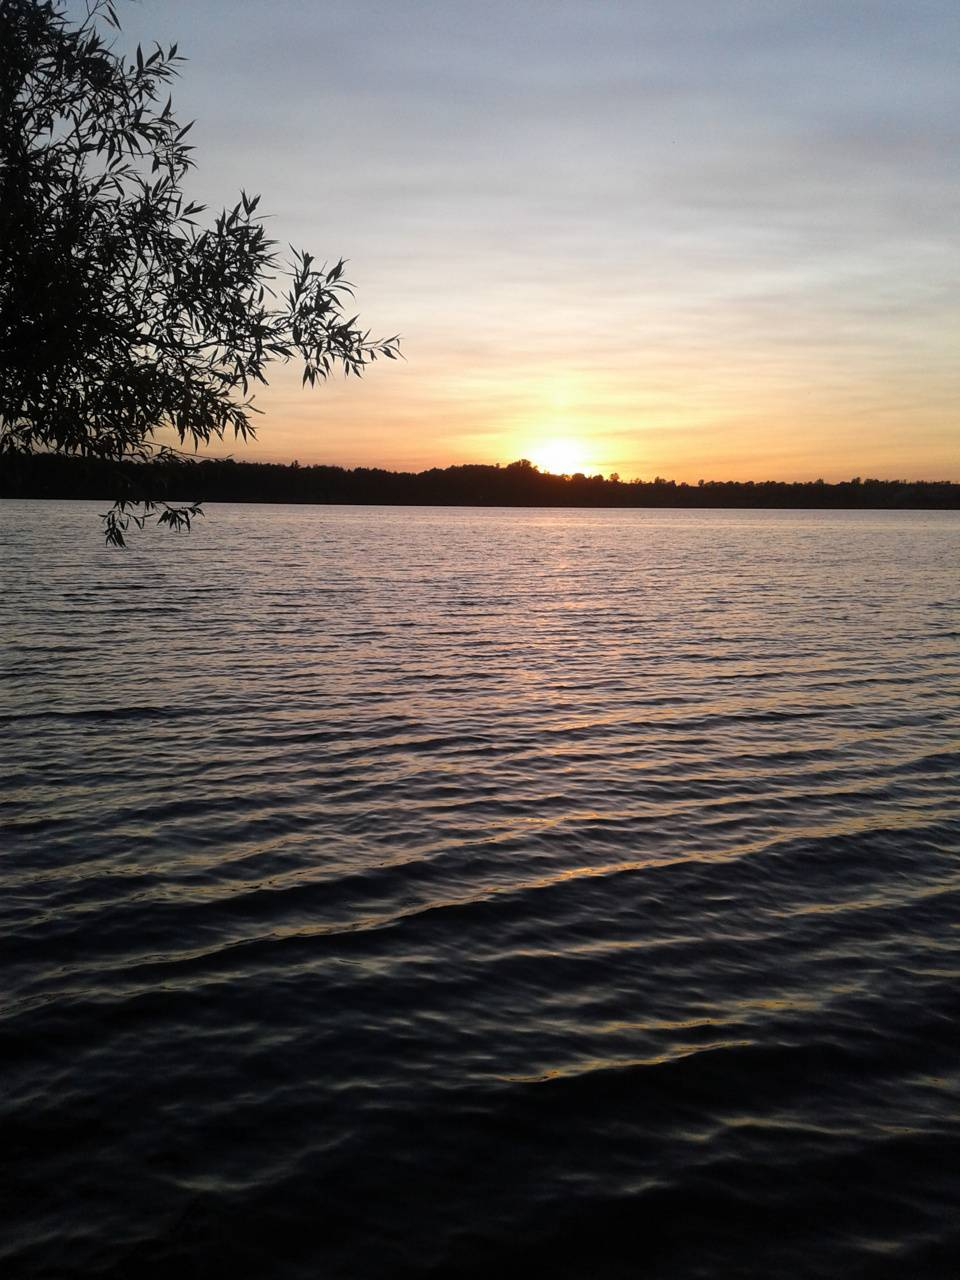 Sunset at water